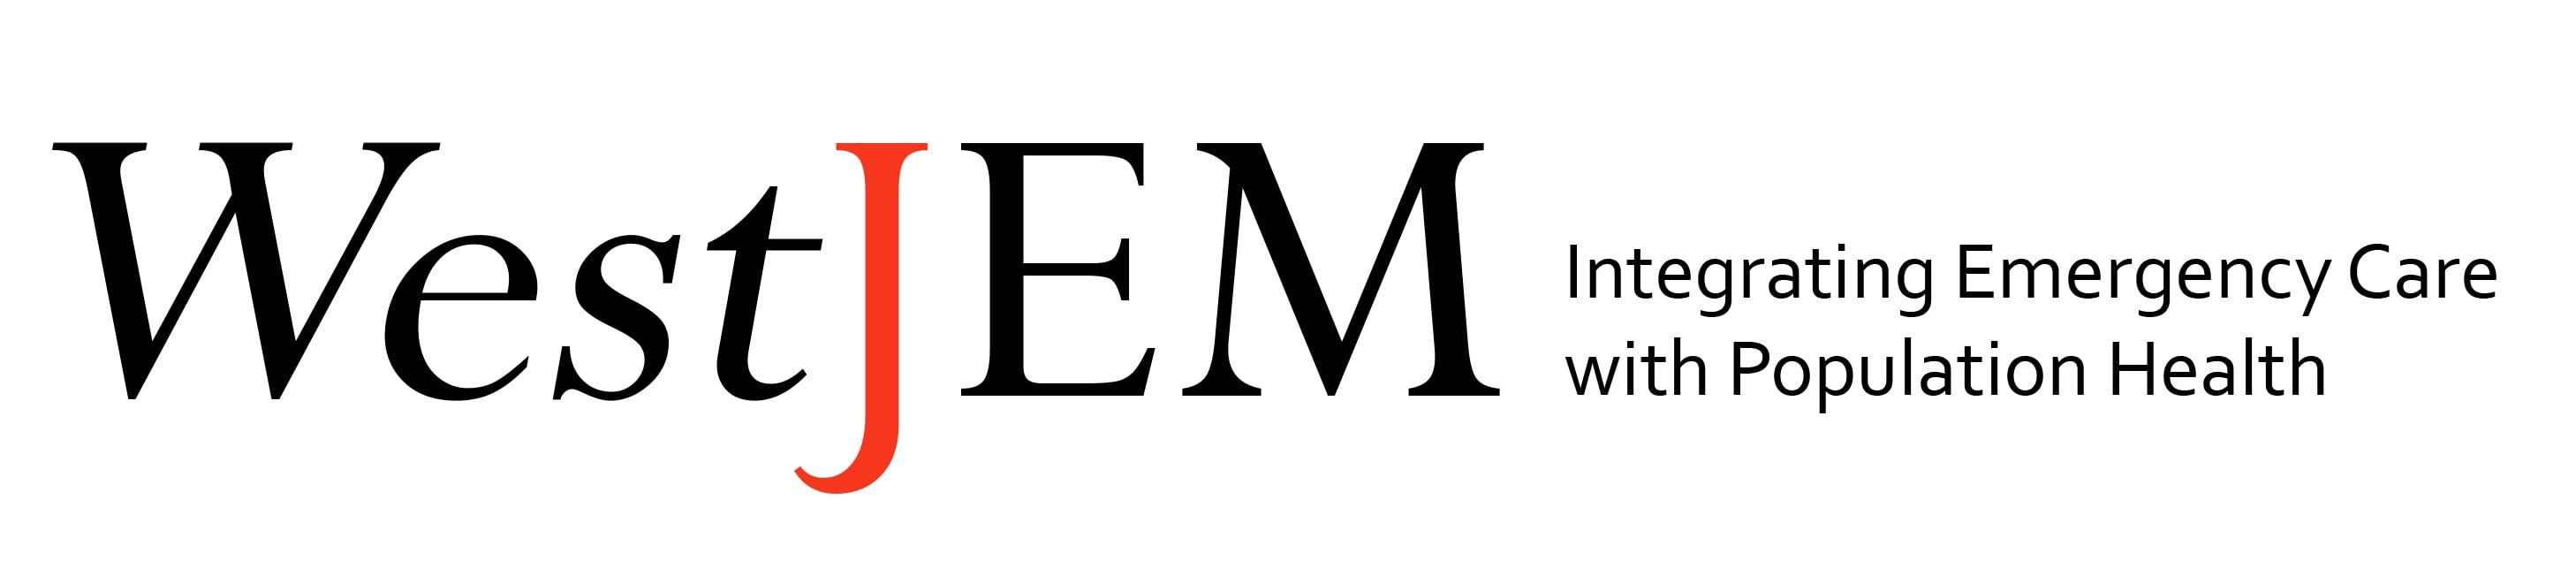 CPC-EM: Volume 3 Issue 3 Archives - The Western Journal of Emergency Medicine